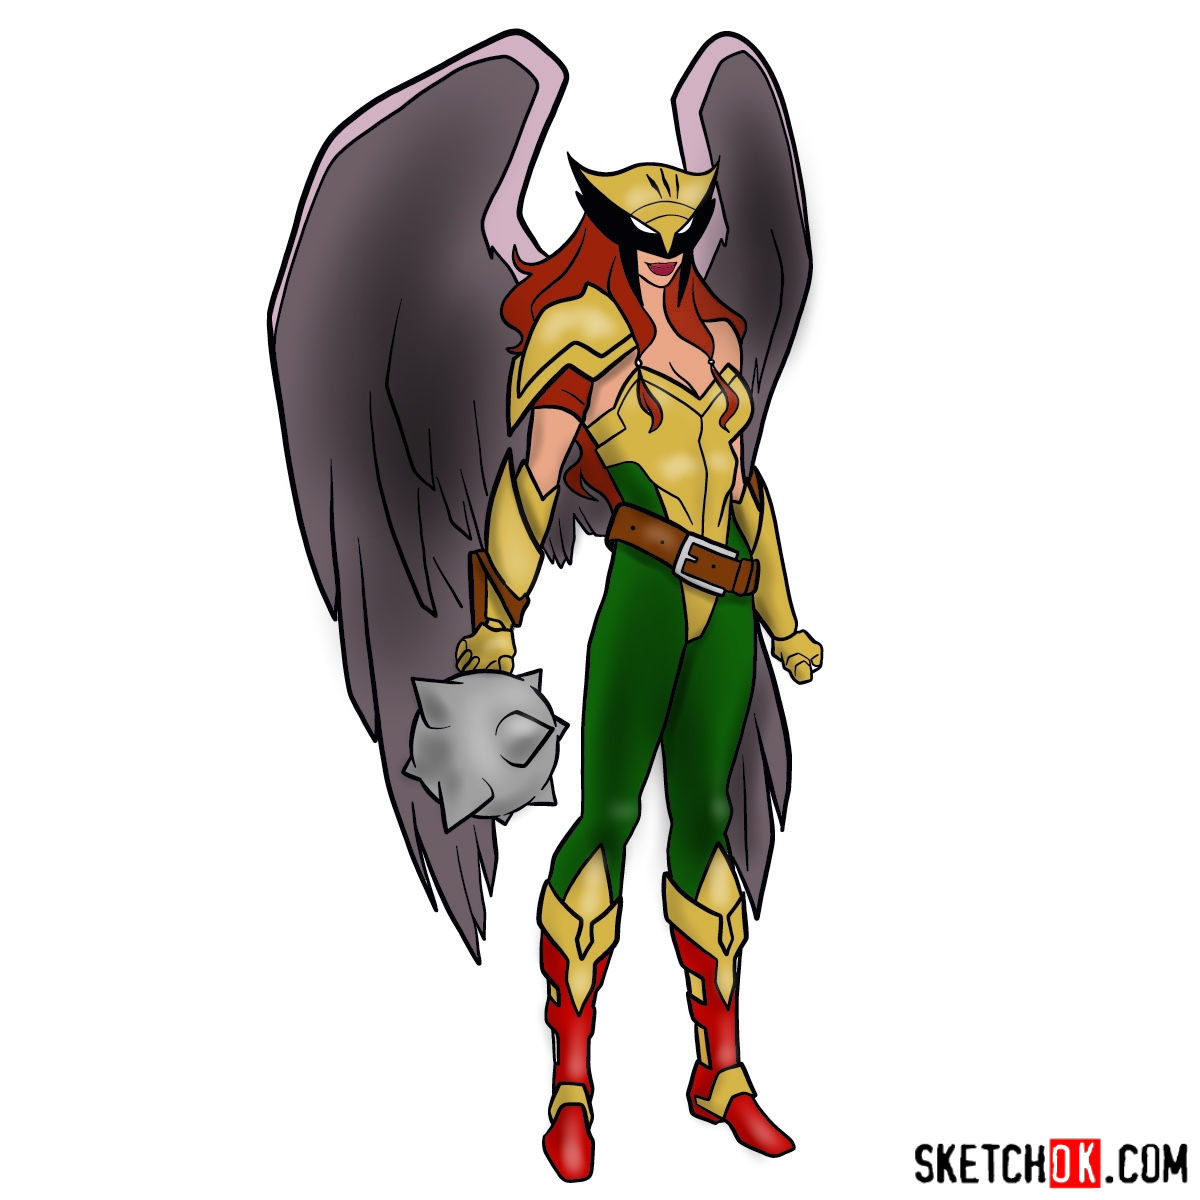 How to draw Hawkgirl DC superheroine